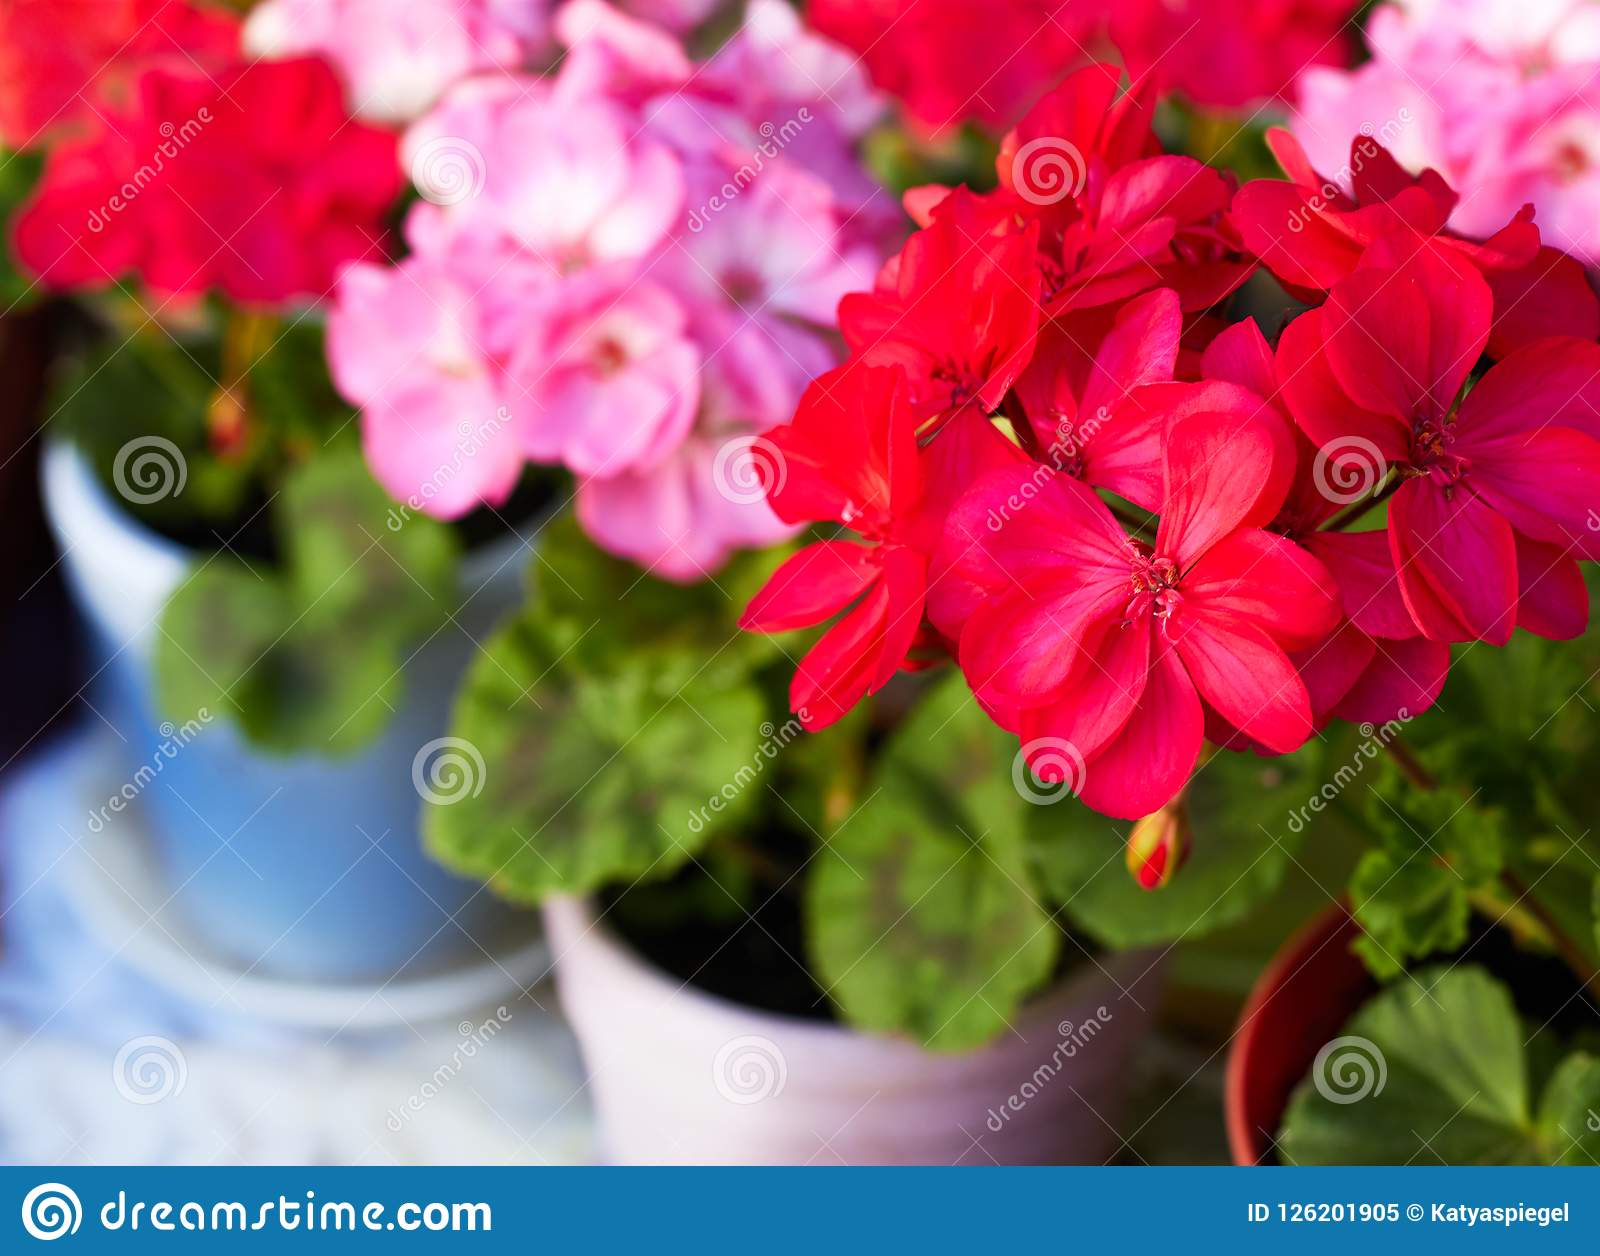 Red and pink geranium garden flowers in clay flowerpots, macro